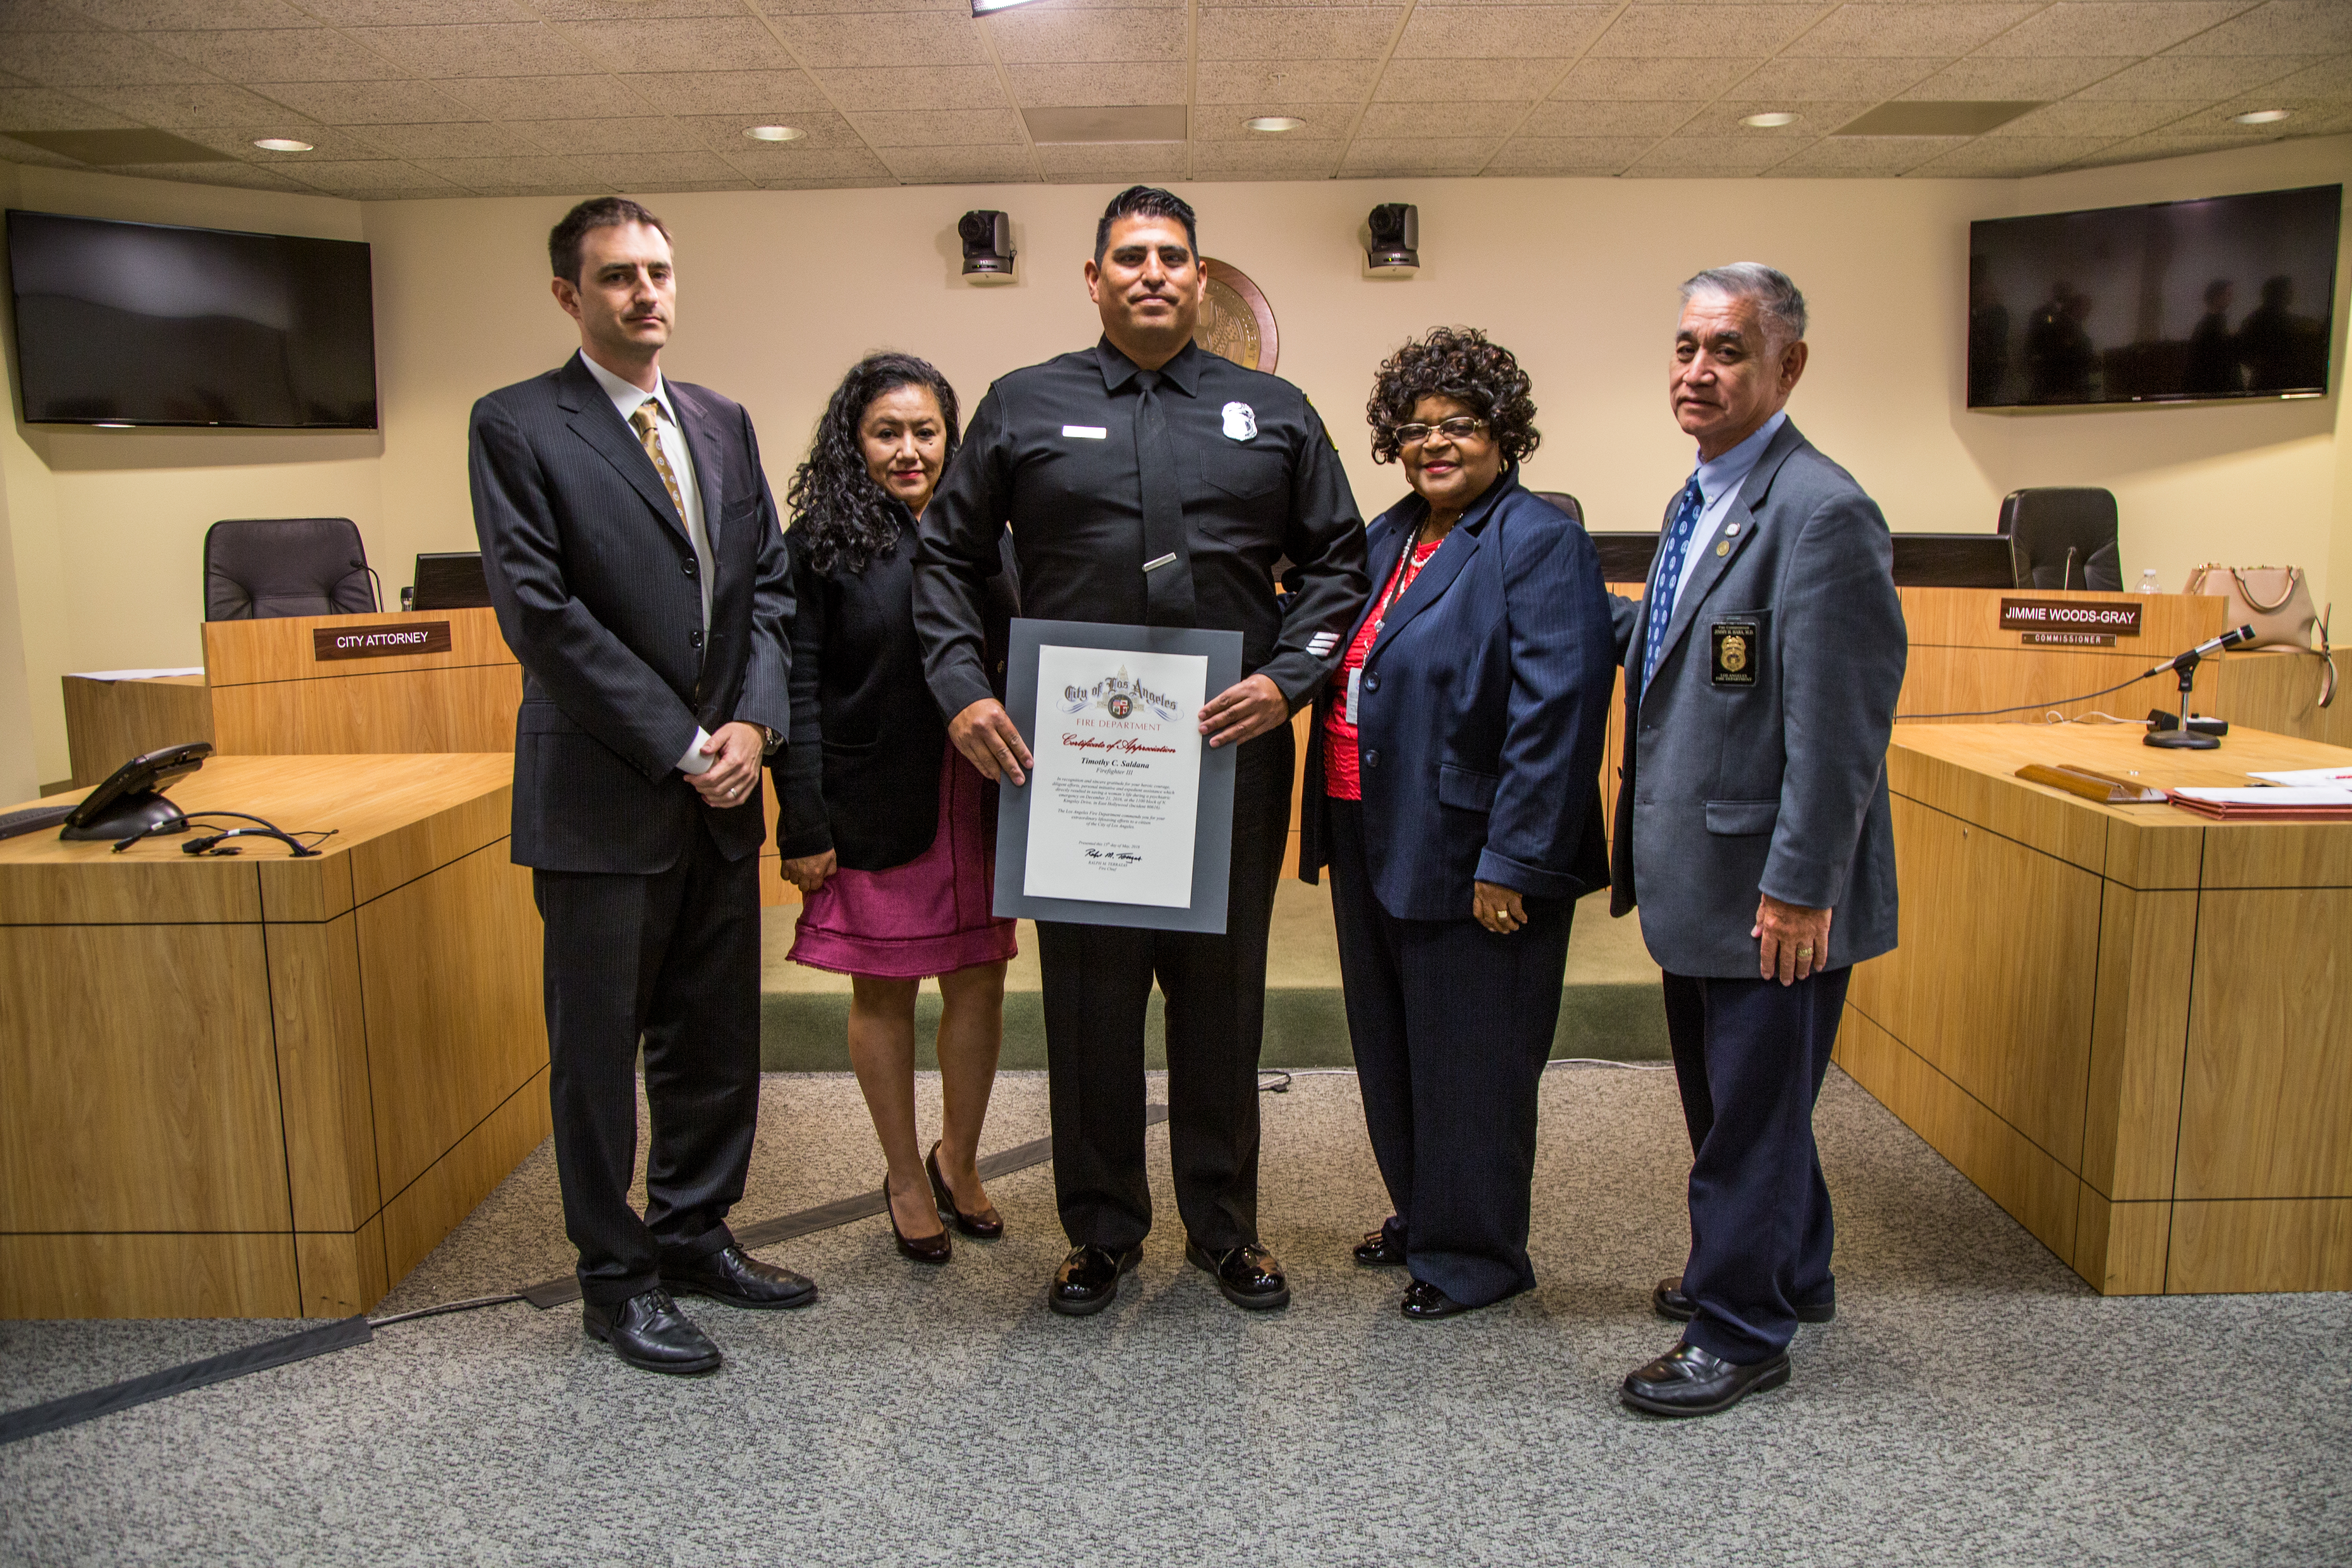 LAFD Firefighter Saldana stands with Fire Commissioners with a Certificate of Appreciation